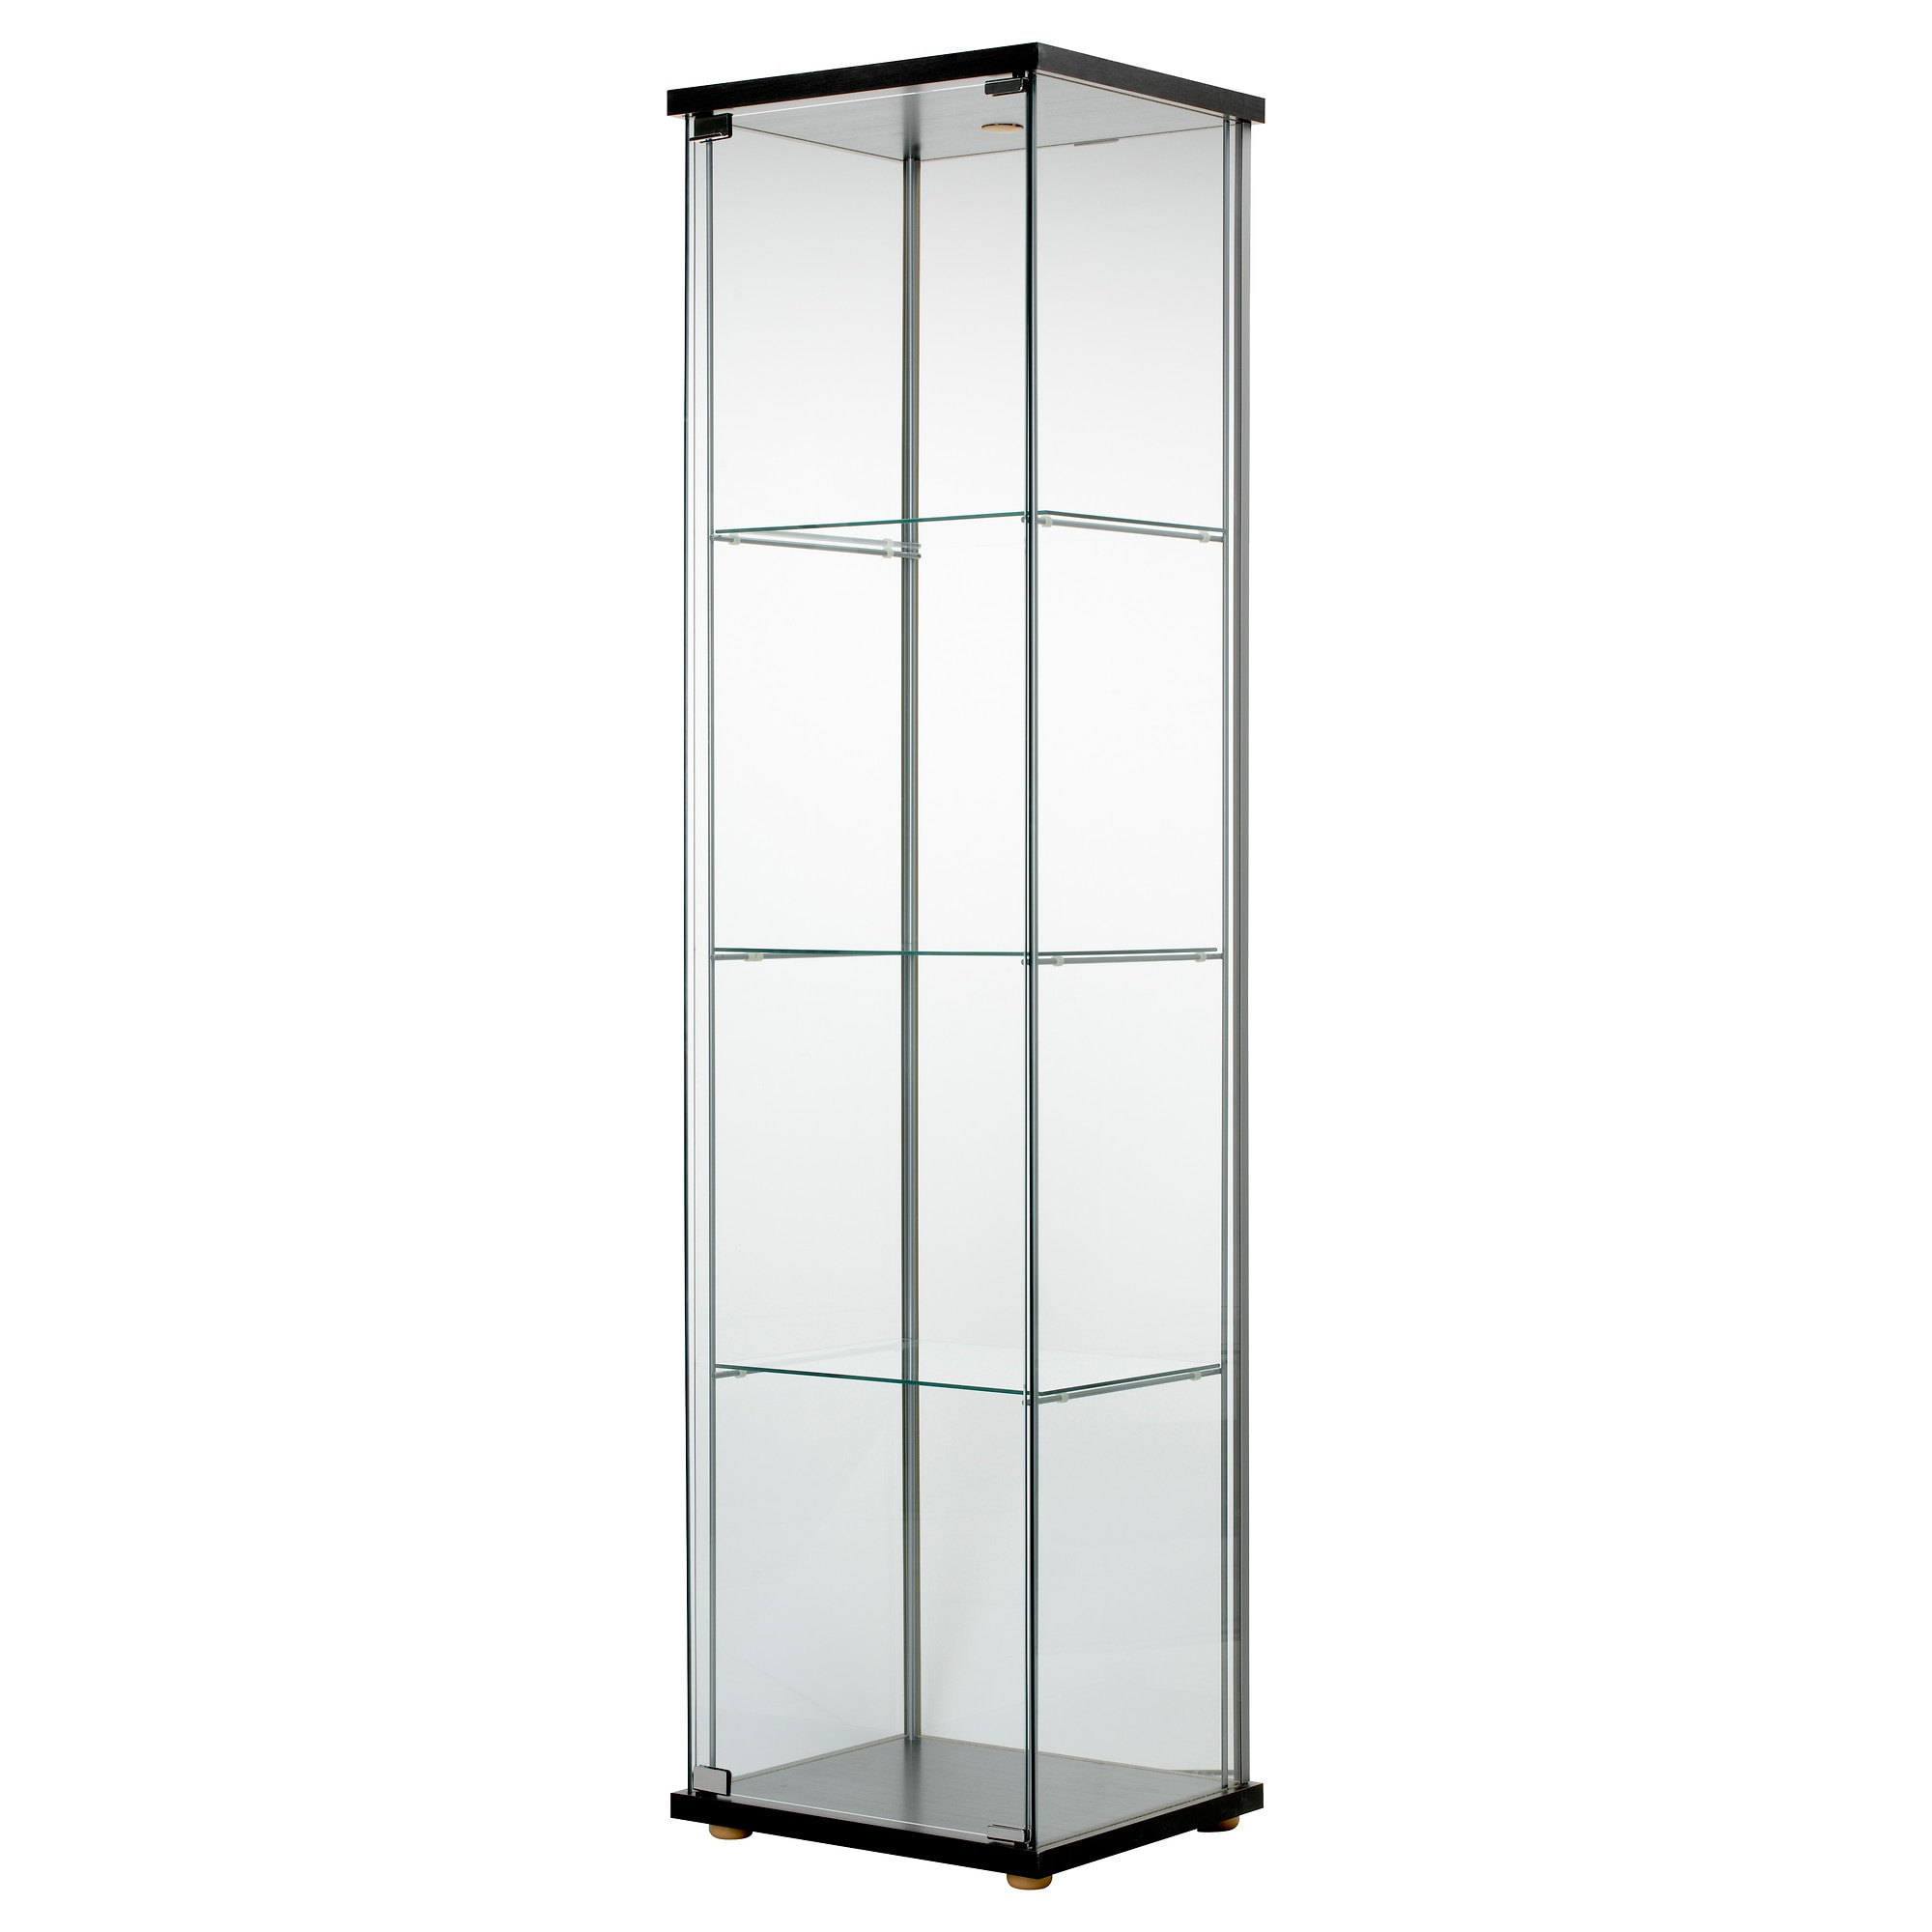 door ikea curio full roll display glassdoor cabinets cabinet klingsbo locks sektion lighted case size sizes gray glass of front shelves